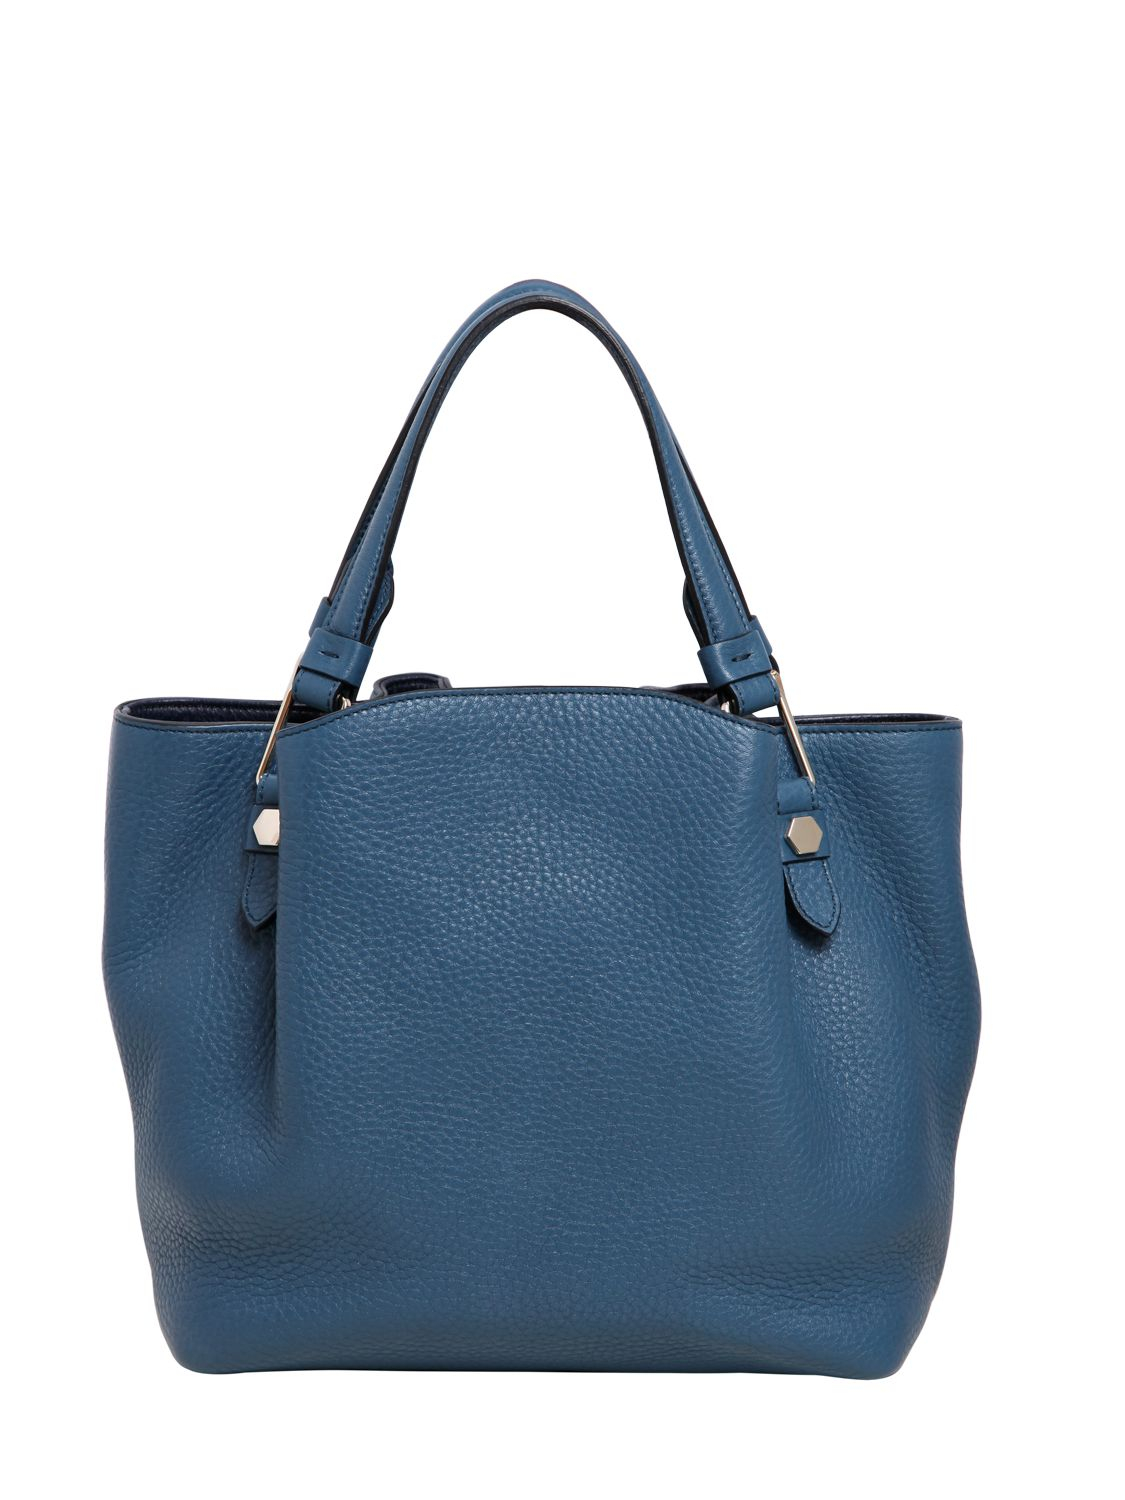 Tod's Small Flower Grained Leather Bag in Blue